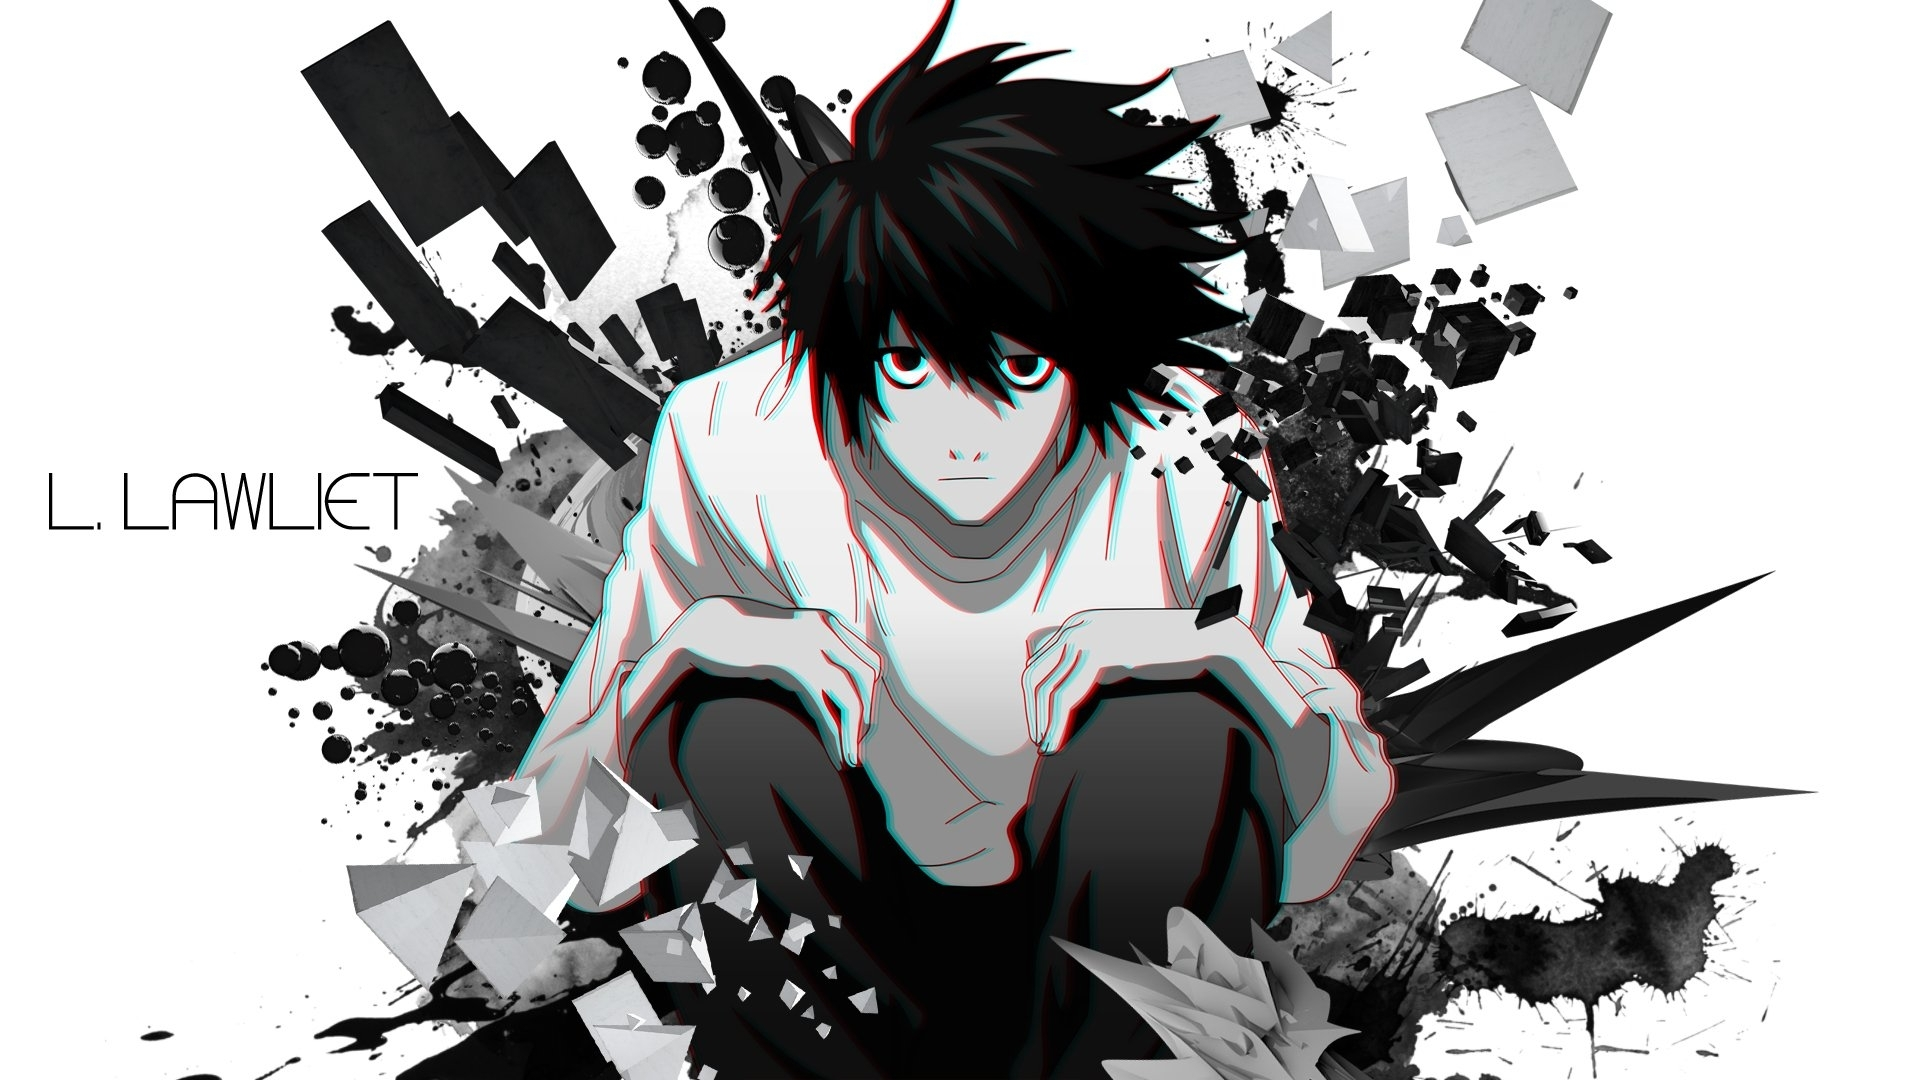 death note full hd wallpaper and background image | 1920x1080 | id